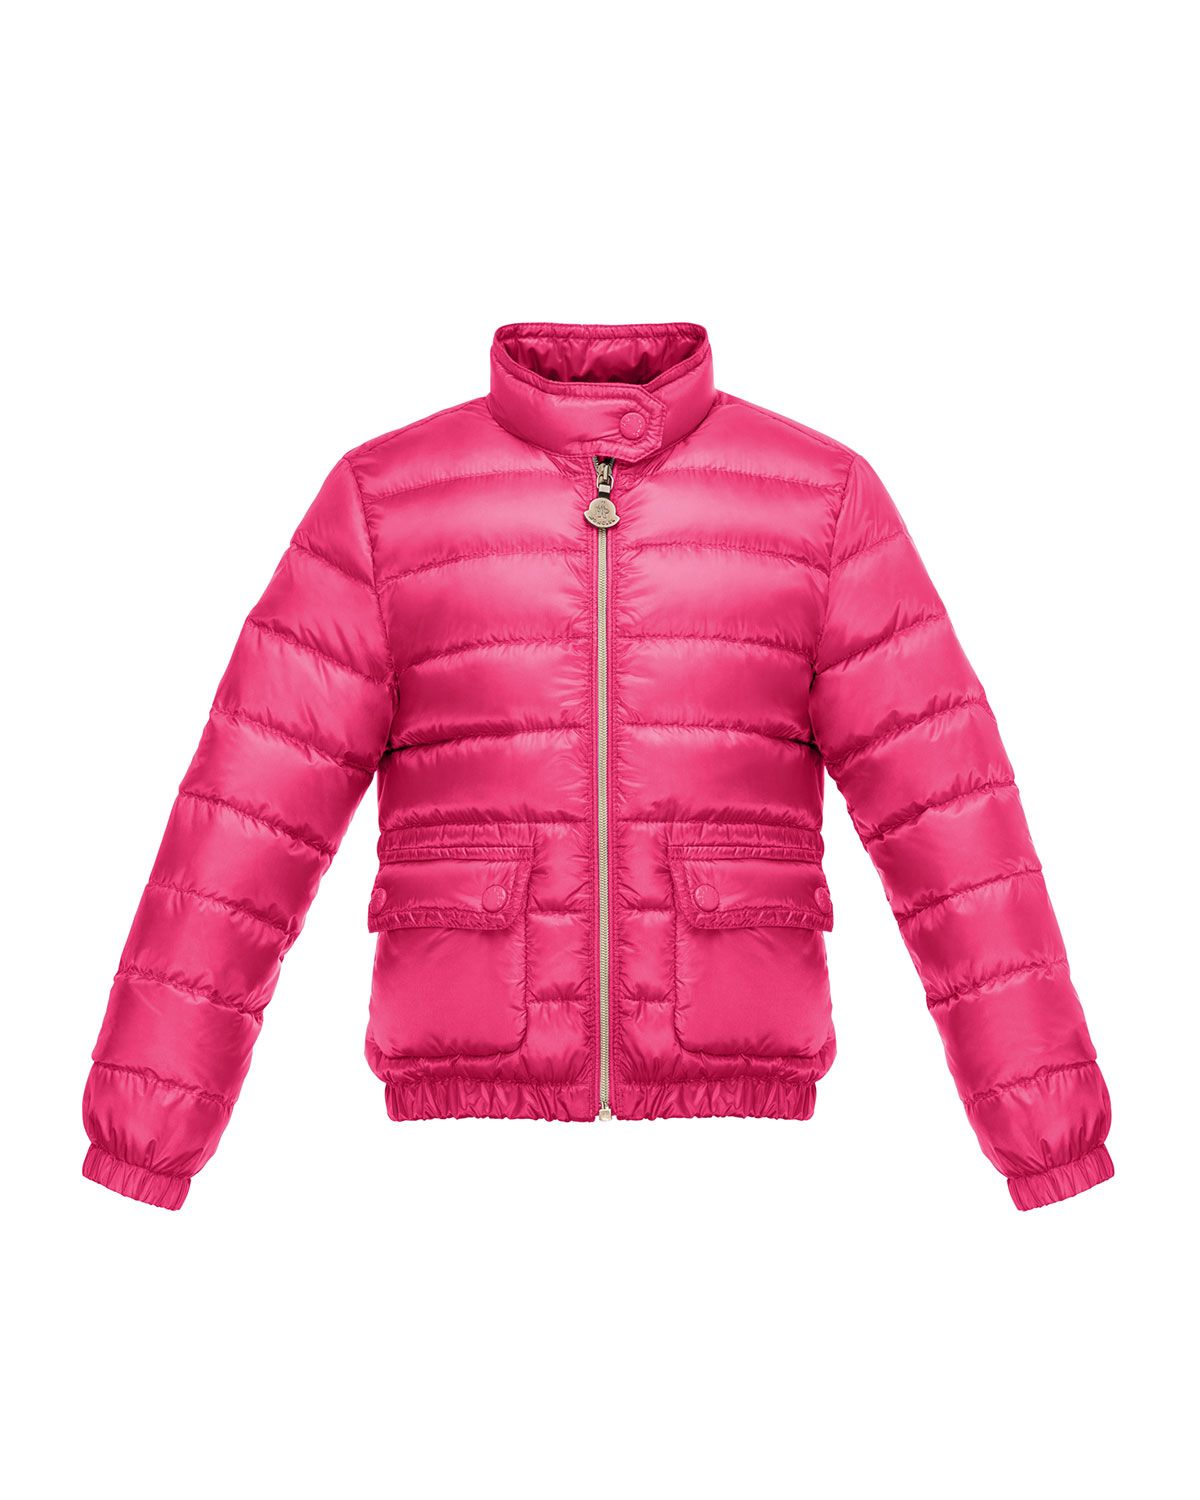 848511bf2 Kid's Designer Clothing at Neiman Marcus. Lans Flap-Pocket Lightweight Down  Puffer Jacket, Fuchsia (Pink), Size 8-14, Size: 10 - Moncler